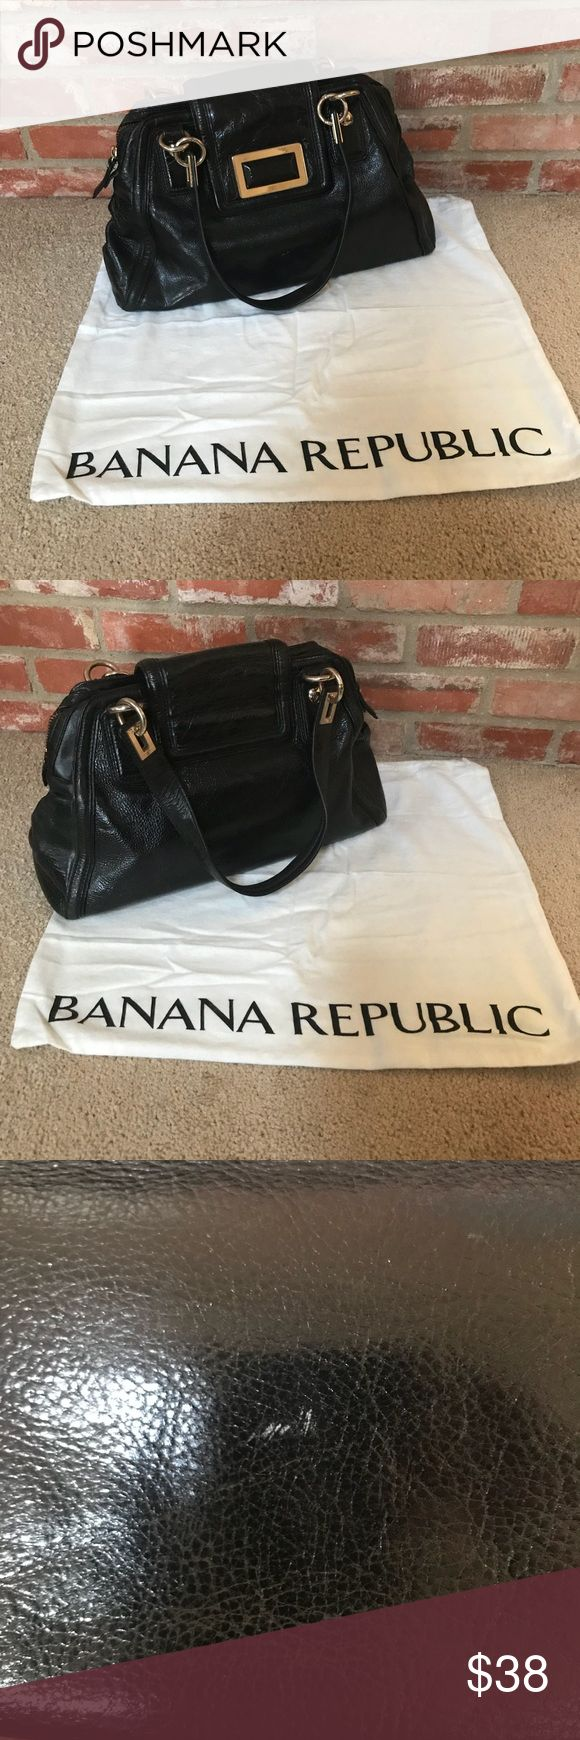 Banana Republic Black purse with dust bag Cute Banana Republic purse. 17 inches long 10 inches tall 6 inches wide 9 inch strap drop Some wear and scratches pictured  The inside is pretty clean I accept reasonable offers! Bundle your likes for a private offer 💜 The more you buy the more you save 👗 Banana Republic Bags Shoulder Bags